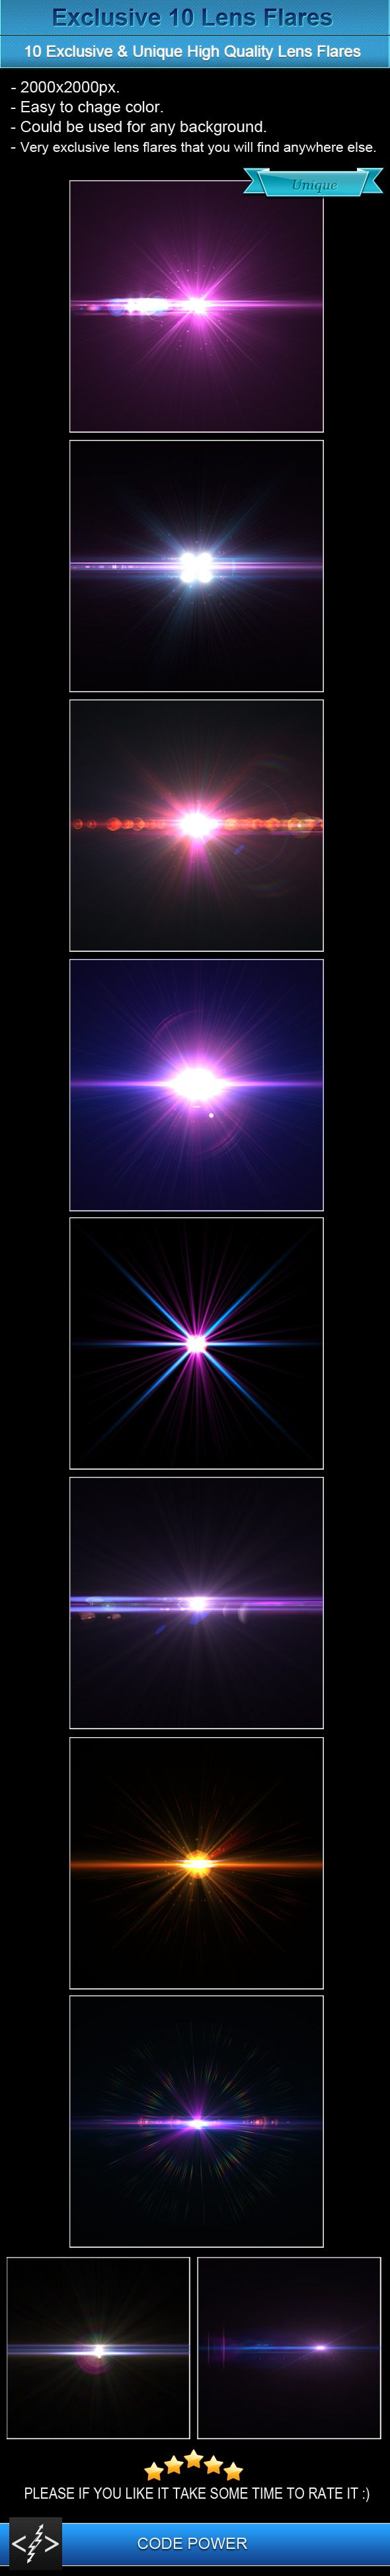 Exclusive 10 Lens Flares by khaledzz9 on DeviantArt